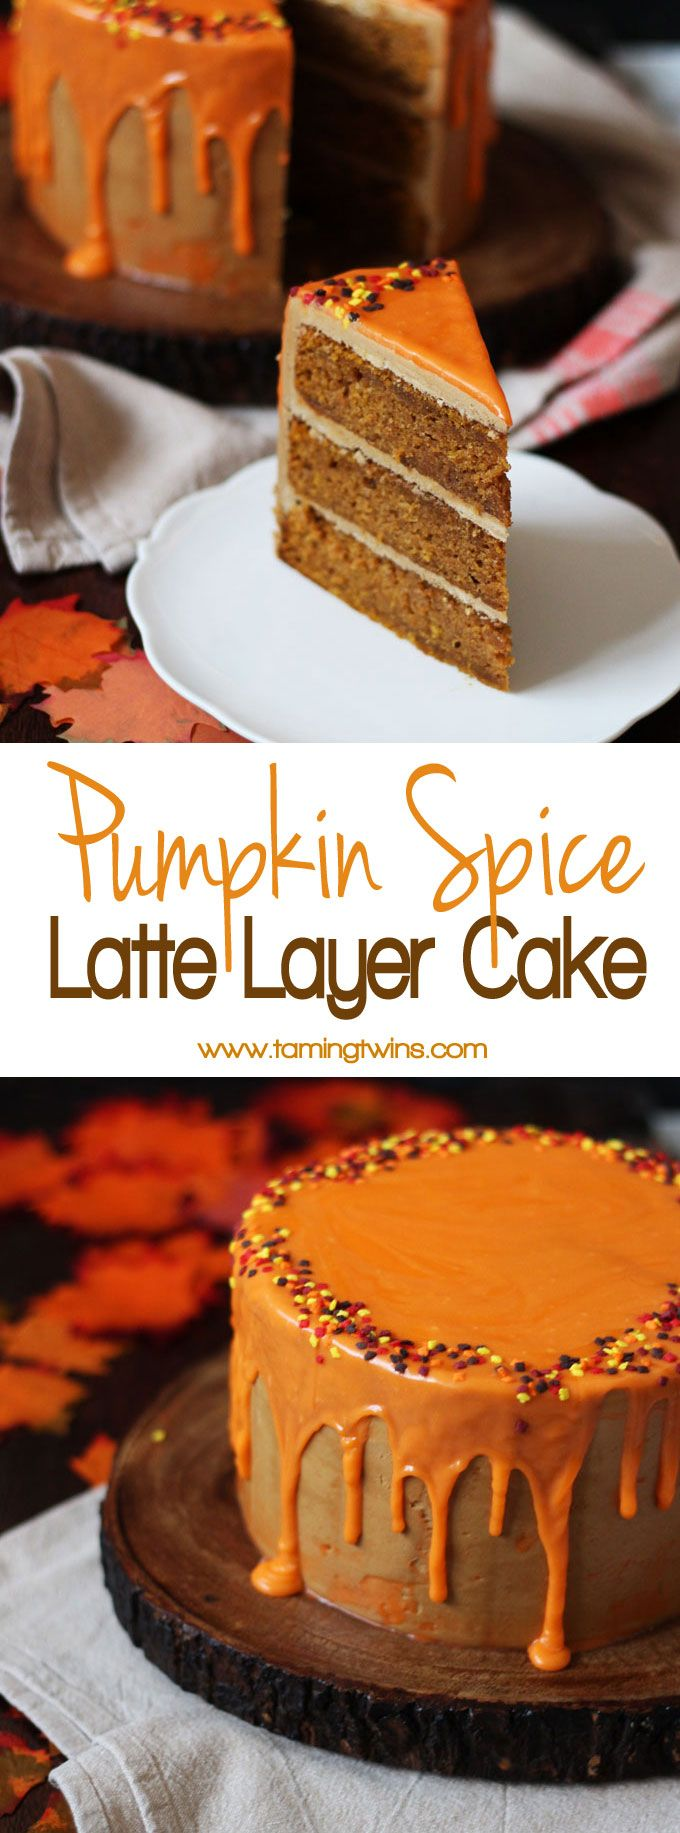 THE Pumpkin Spice Latte Cake Recipe - layers of soft pumpkin spiced cake, with fluffy latte coffee buttercream frosting and a white chocolate ganache icing drizzle. Here's how to make a Pumpkin Spice Latte Layer Cake!